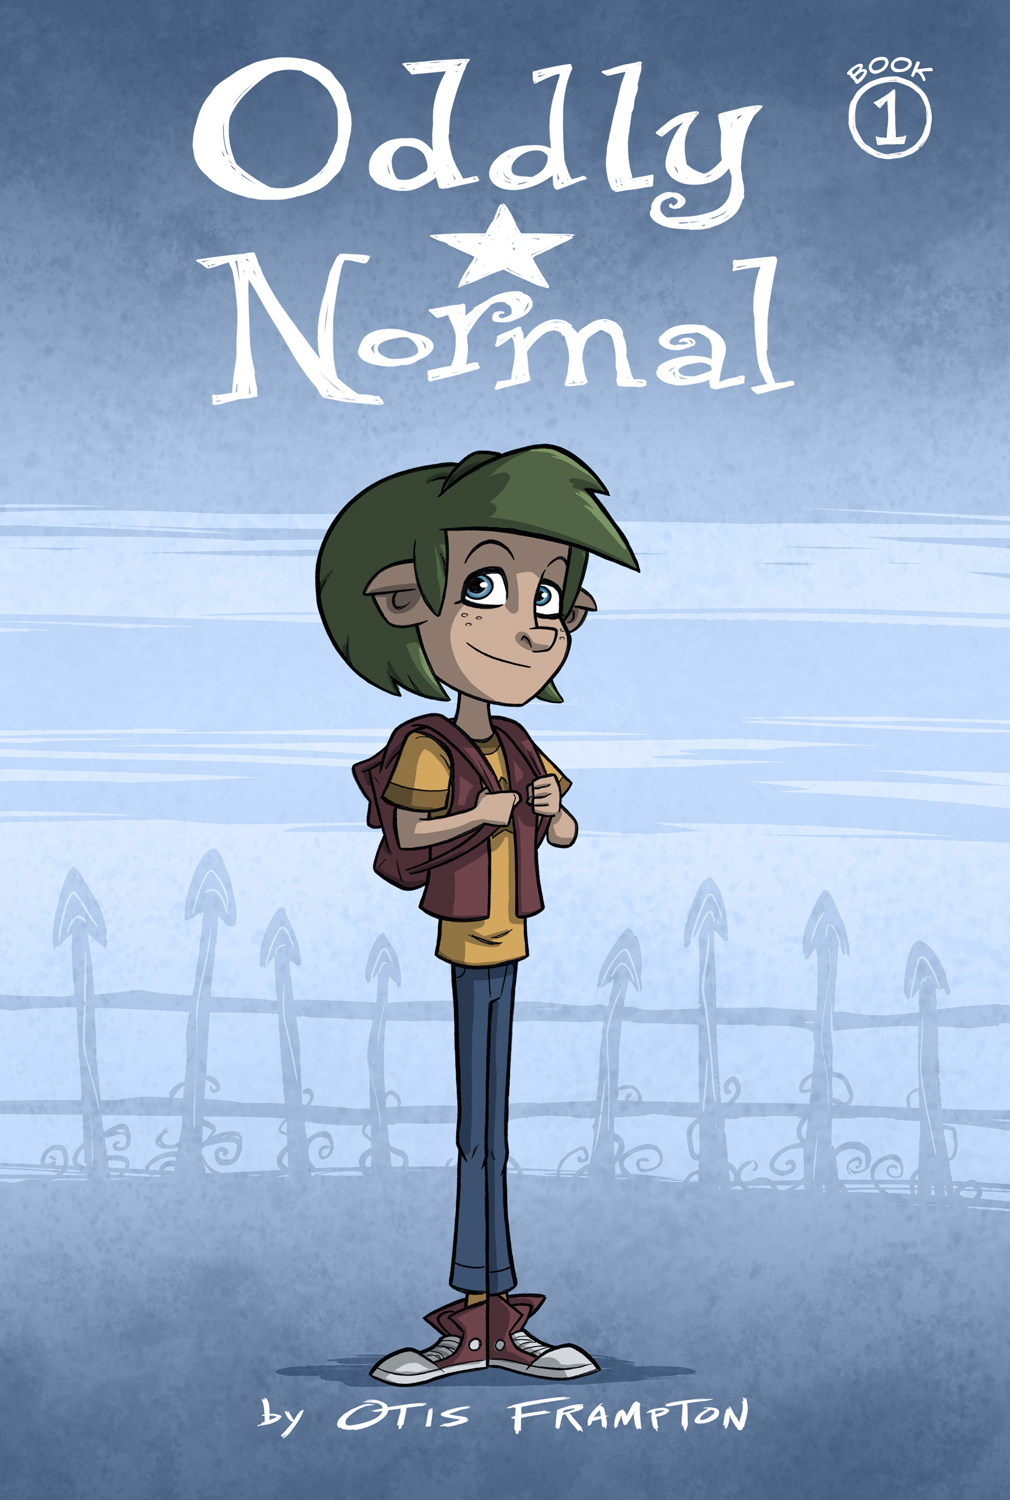 Oddly Normal